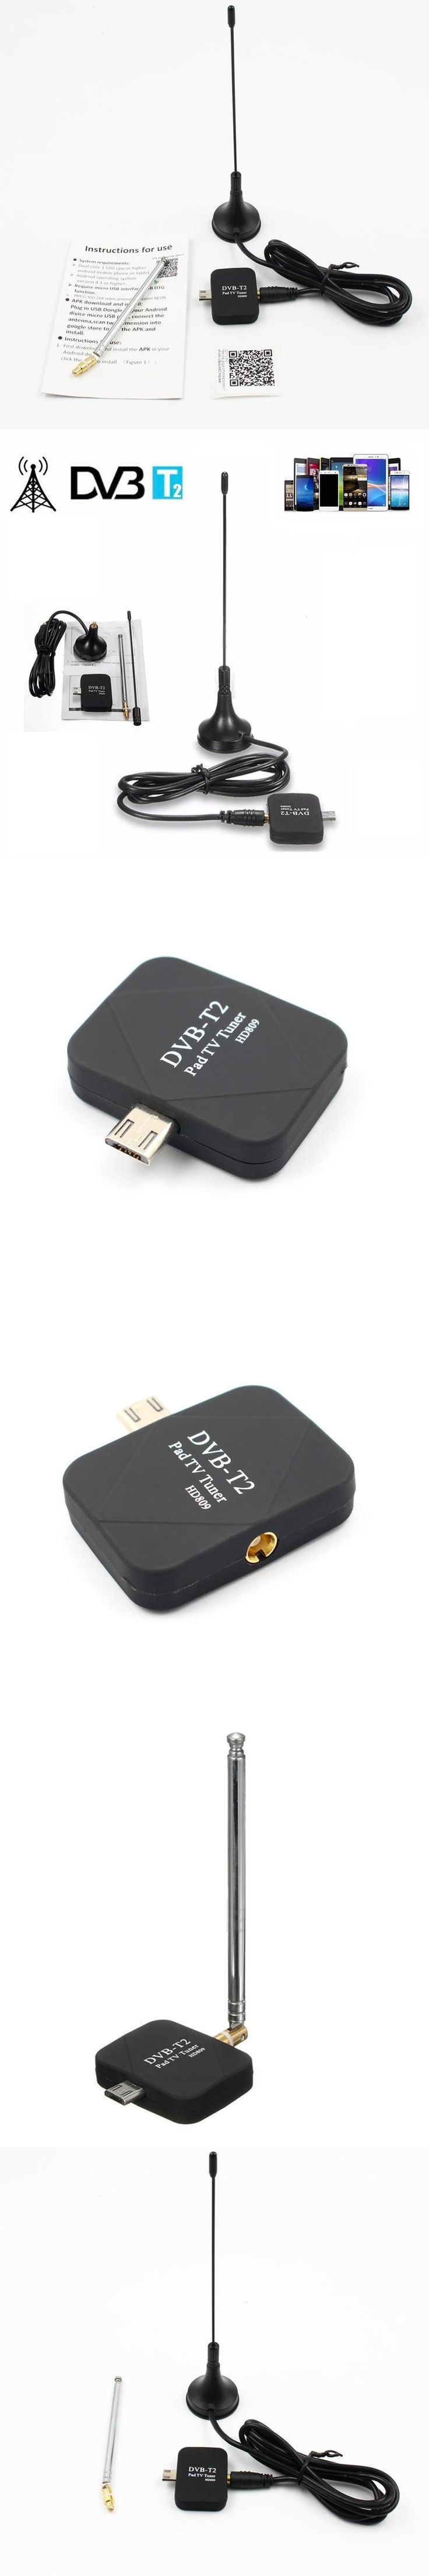 DVB-T2 DVB-T TV Dongle Receiver USB HD digital TV tuner Stick DVB T/T2/C Satellite Receiver with Antenna FM Russia Europe CHT01